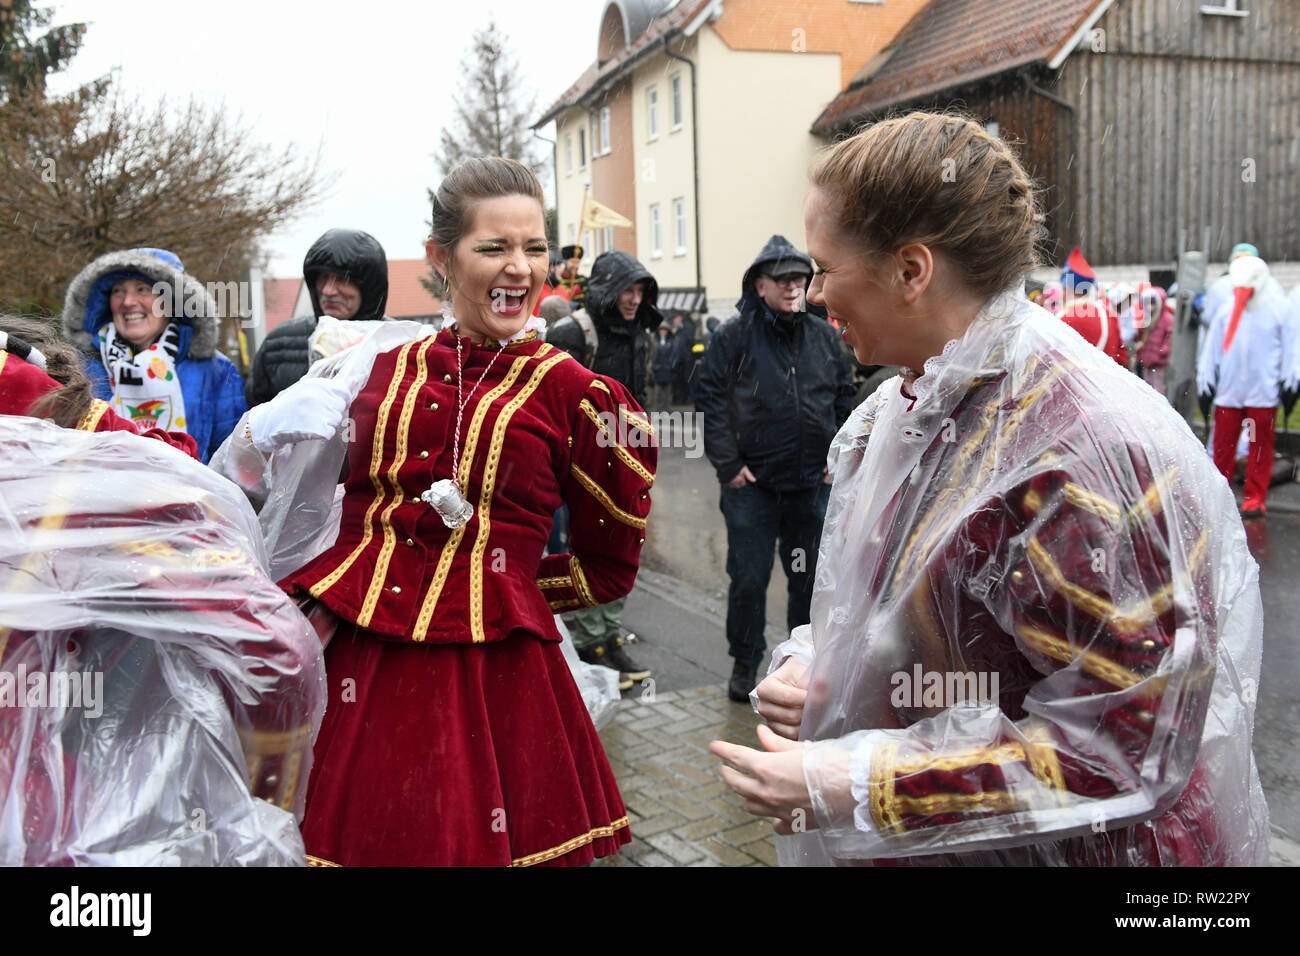 Herbstein, Germany. 04th Mar, 2019. Gardemädchen attract plastic ponchos before the beginning of the traditional jumper procession. The jumper train goes back to an old custom. In the 17th century, Tyrolean stonemasons brought this tradition to Herbstein. Credit: Uwe Zucchi/dpa/Alamy Live News - Stock Image